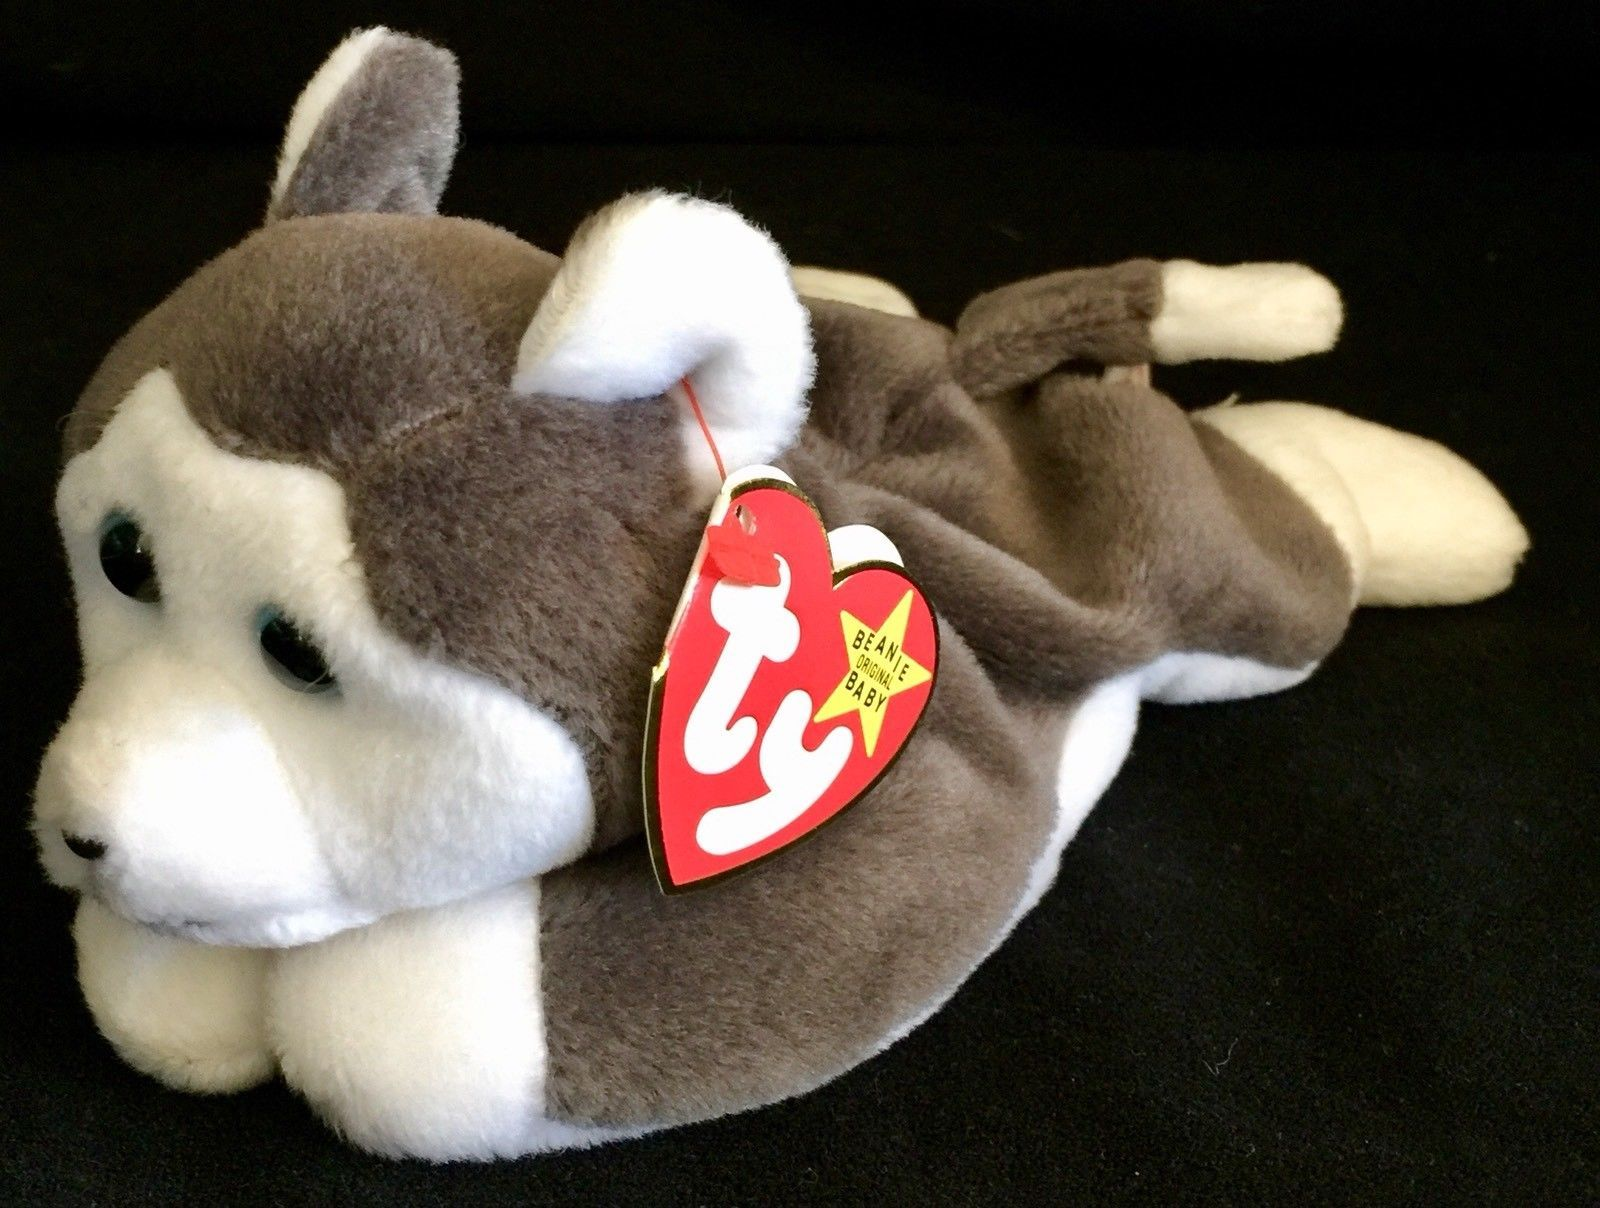 1996 Ty Beanie Baby NANOOK Plush Gray and and 23 similar items. S l1600 5bd3af3f6d4a